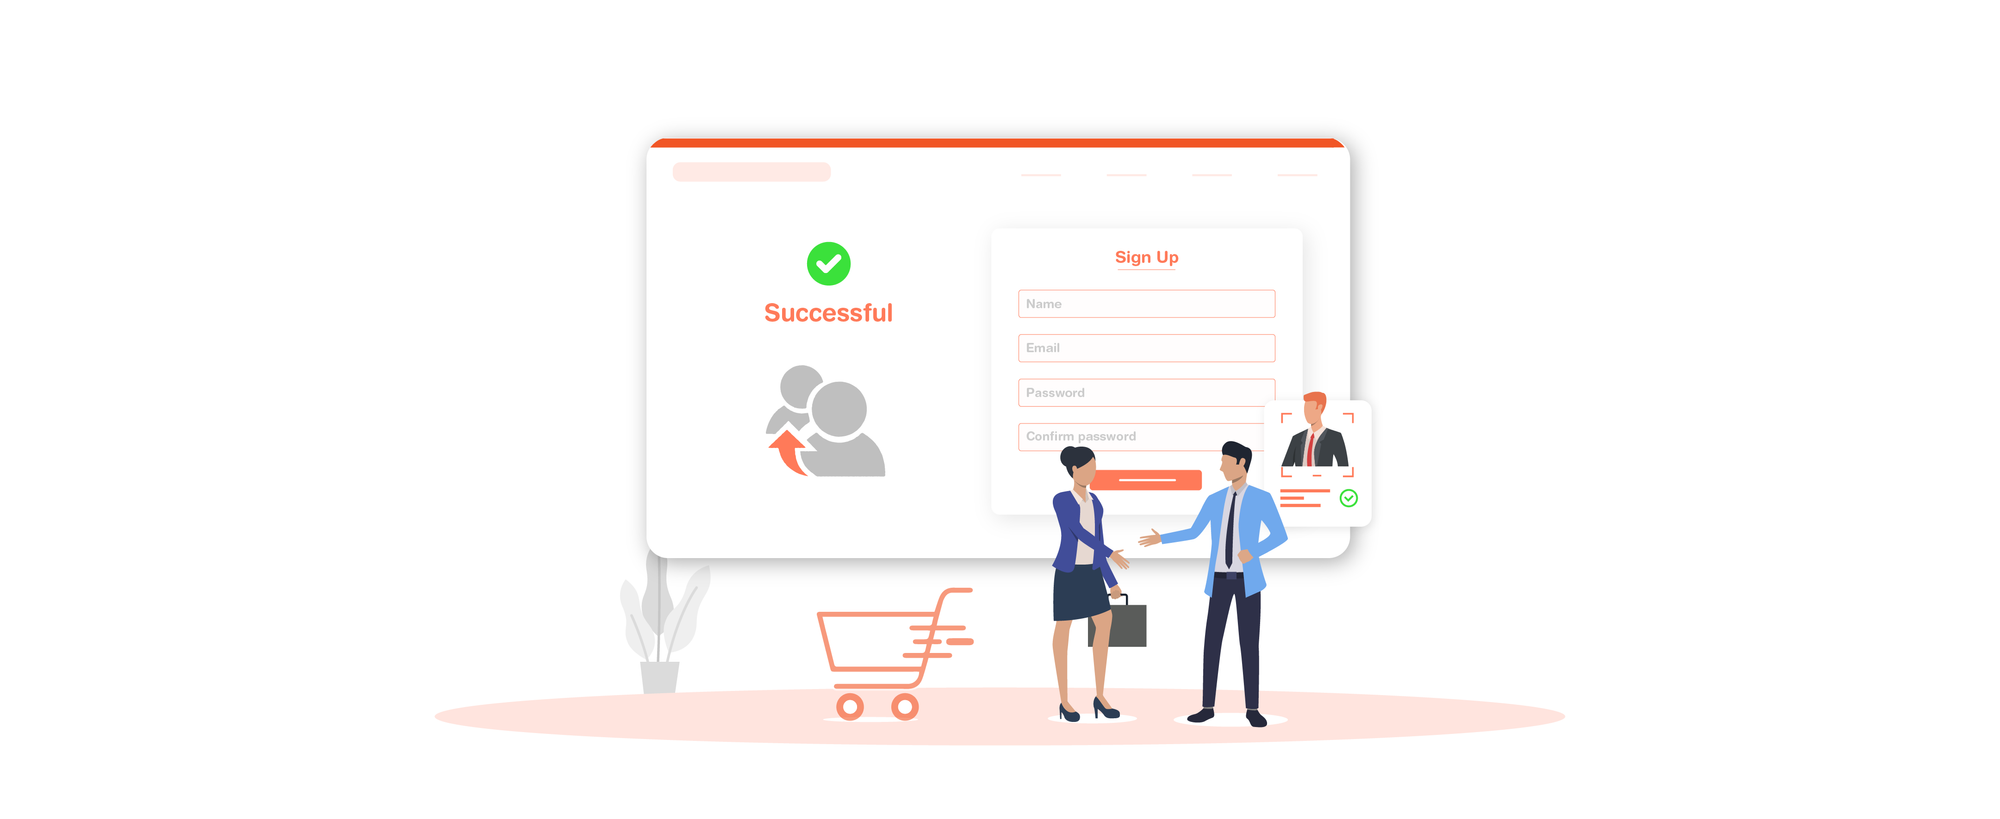 10 Best eCommerce Referral Plugins You Should Consider Using in 2020